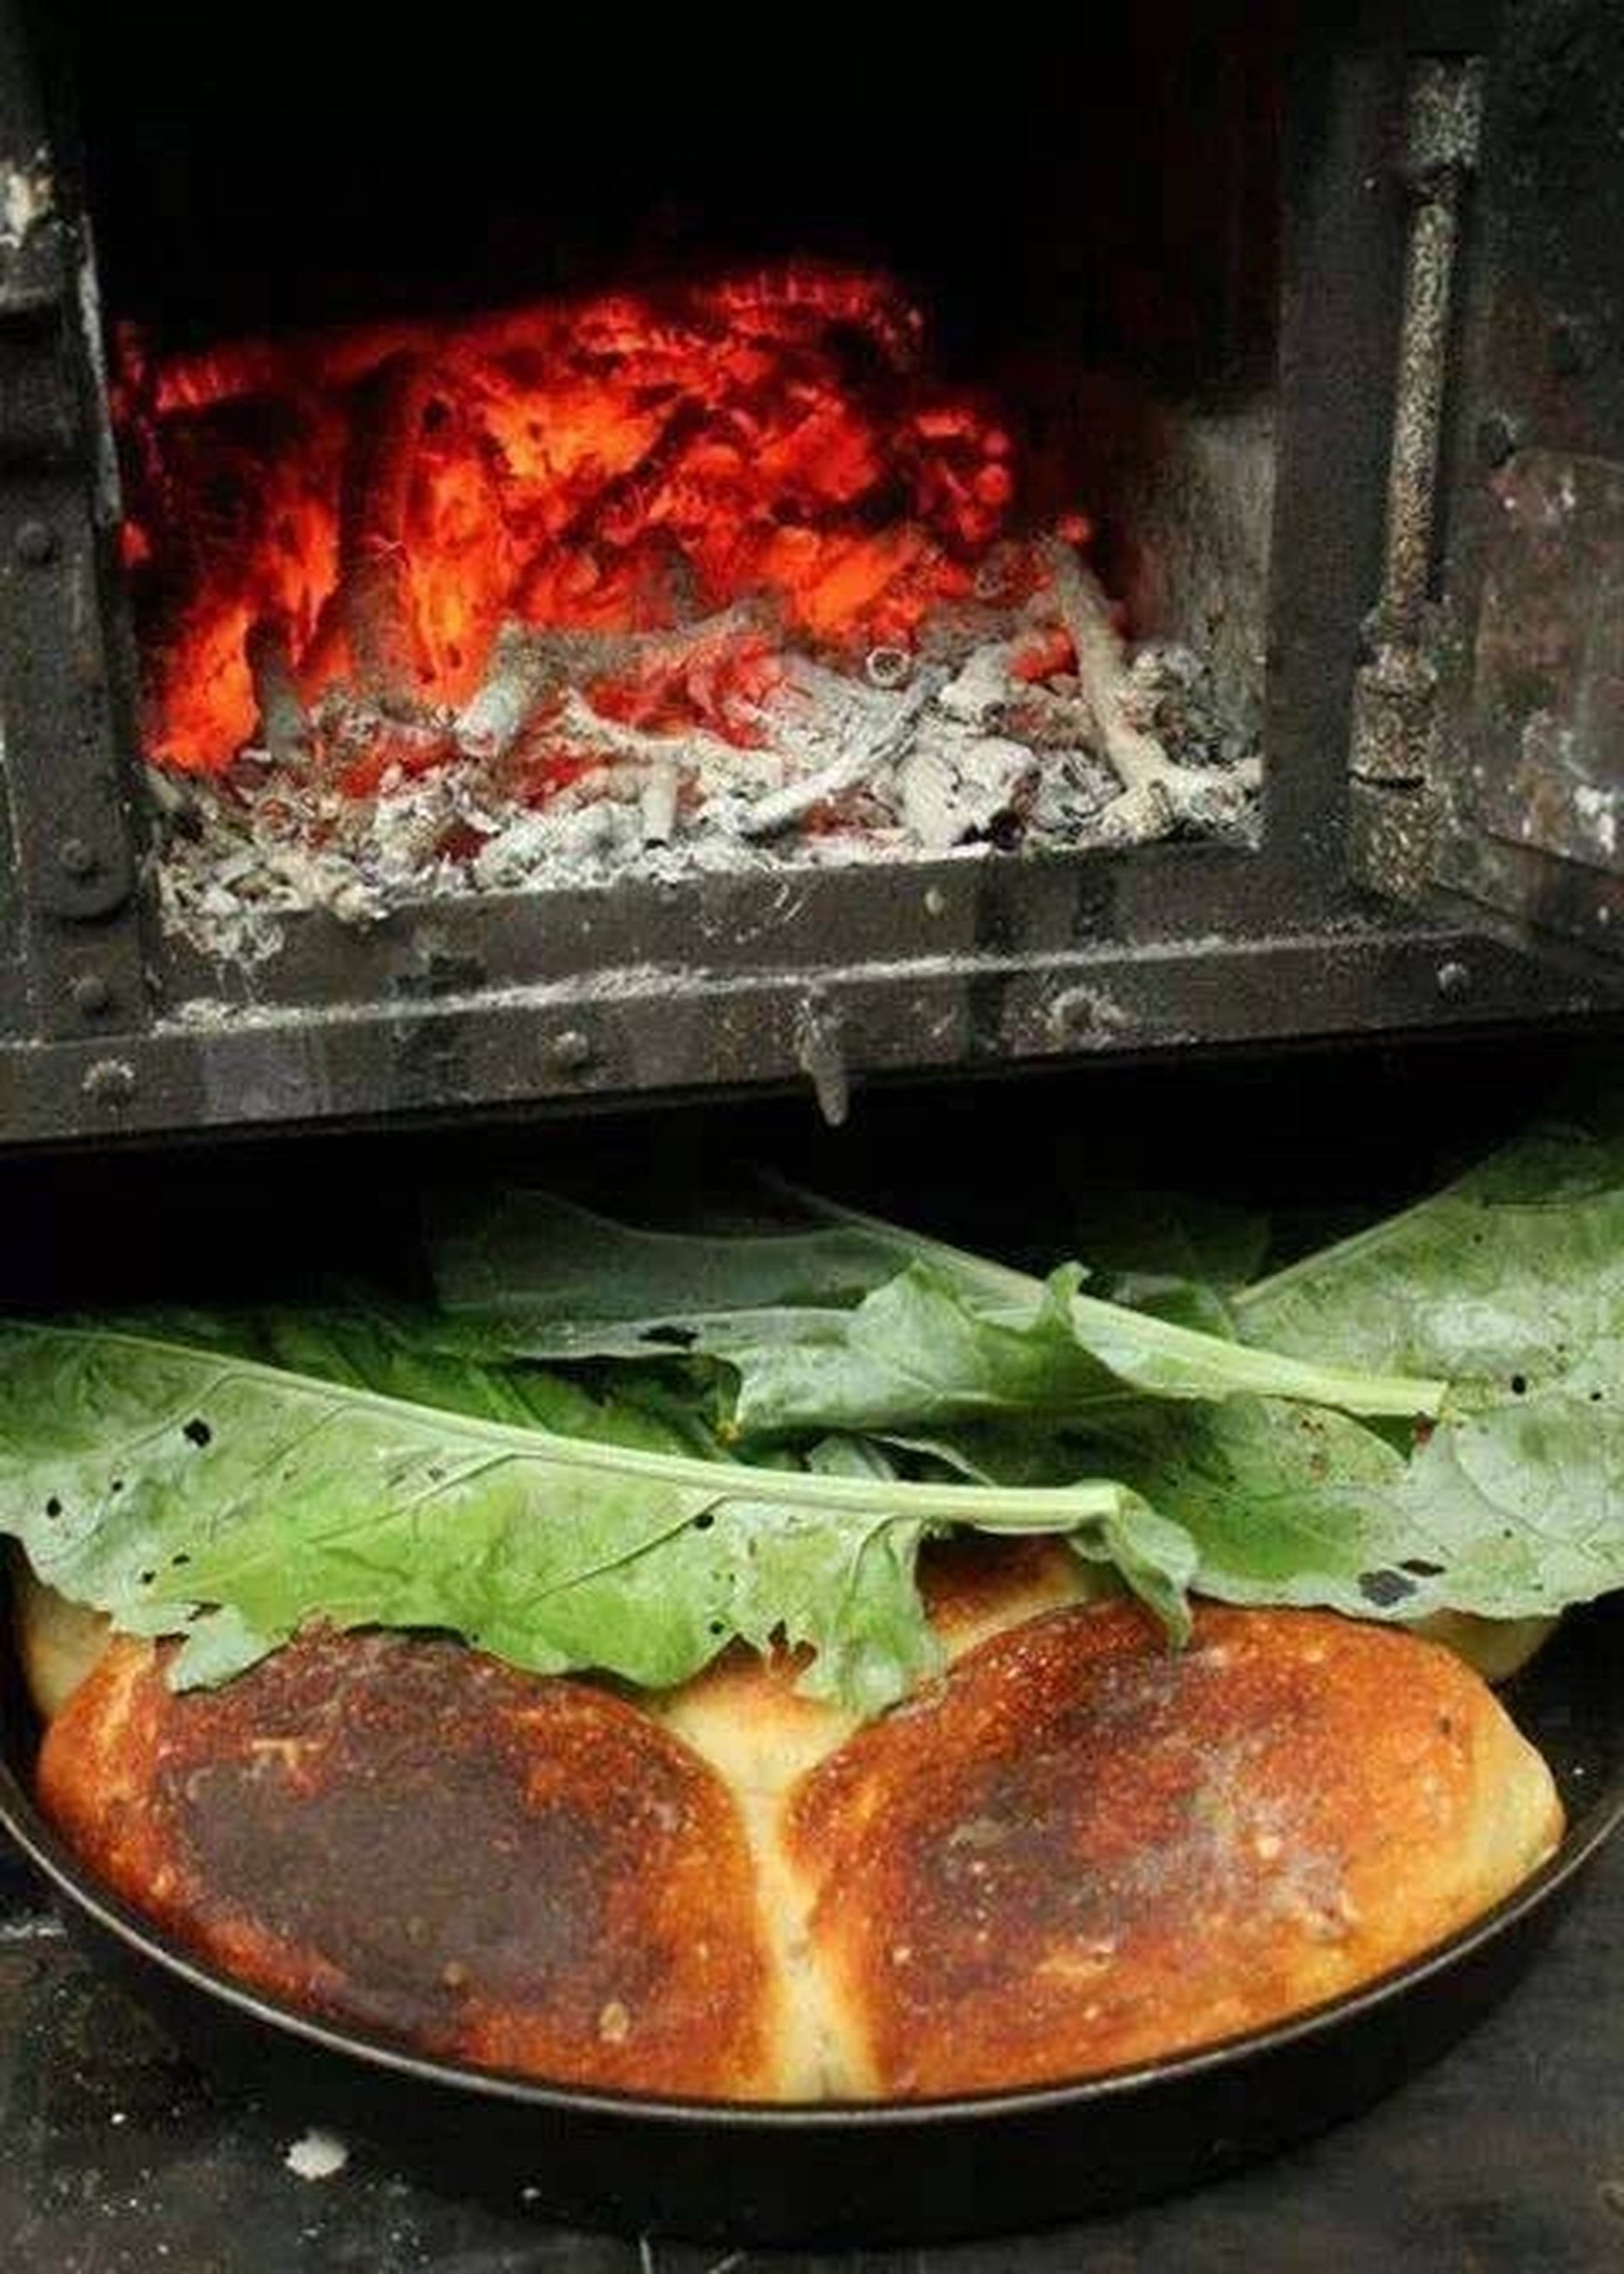 food and drink, indoors, freshness, food, healthy eating, close-up, heat - temperature, still life, vegetable, table, leaf, burning, cooking, preparation, no people, high angle view, meal, fire - natural phenomenon, meat, wood - material